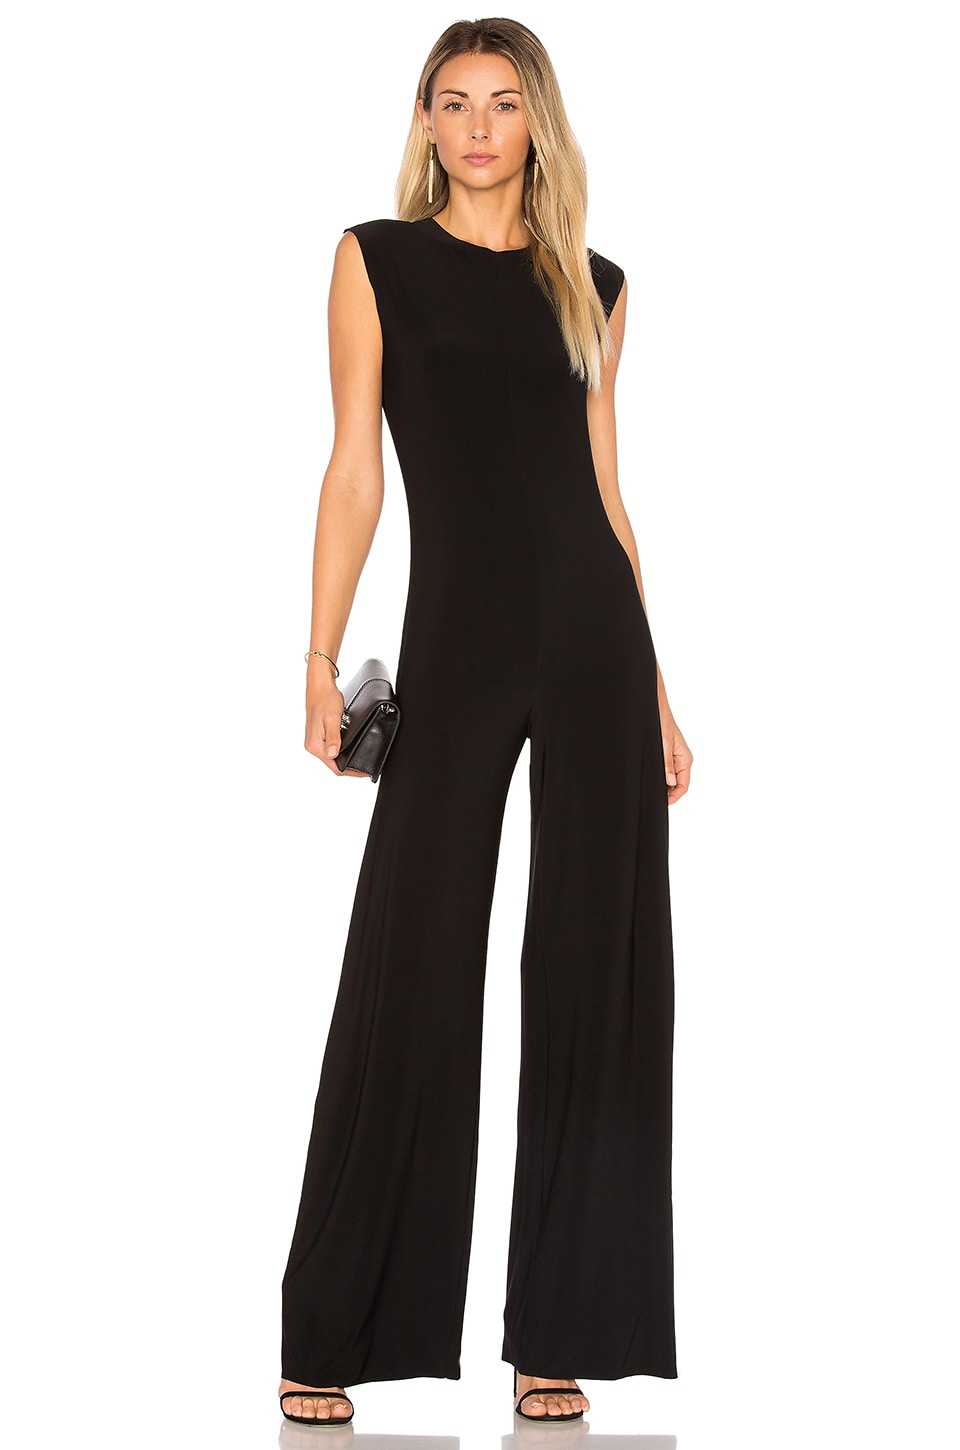 Norma Kamali Sleeveless Jumpsuit in Black